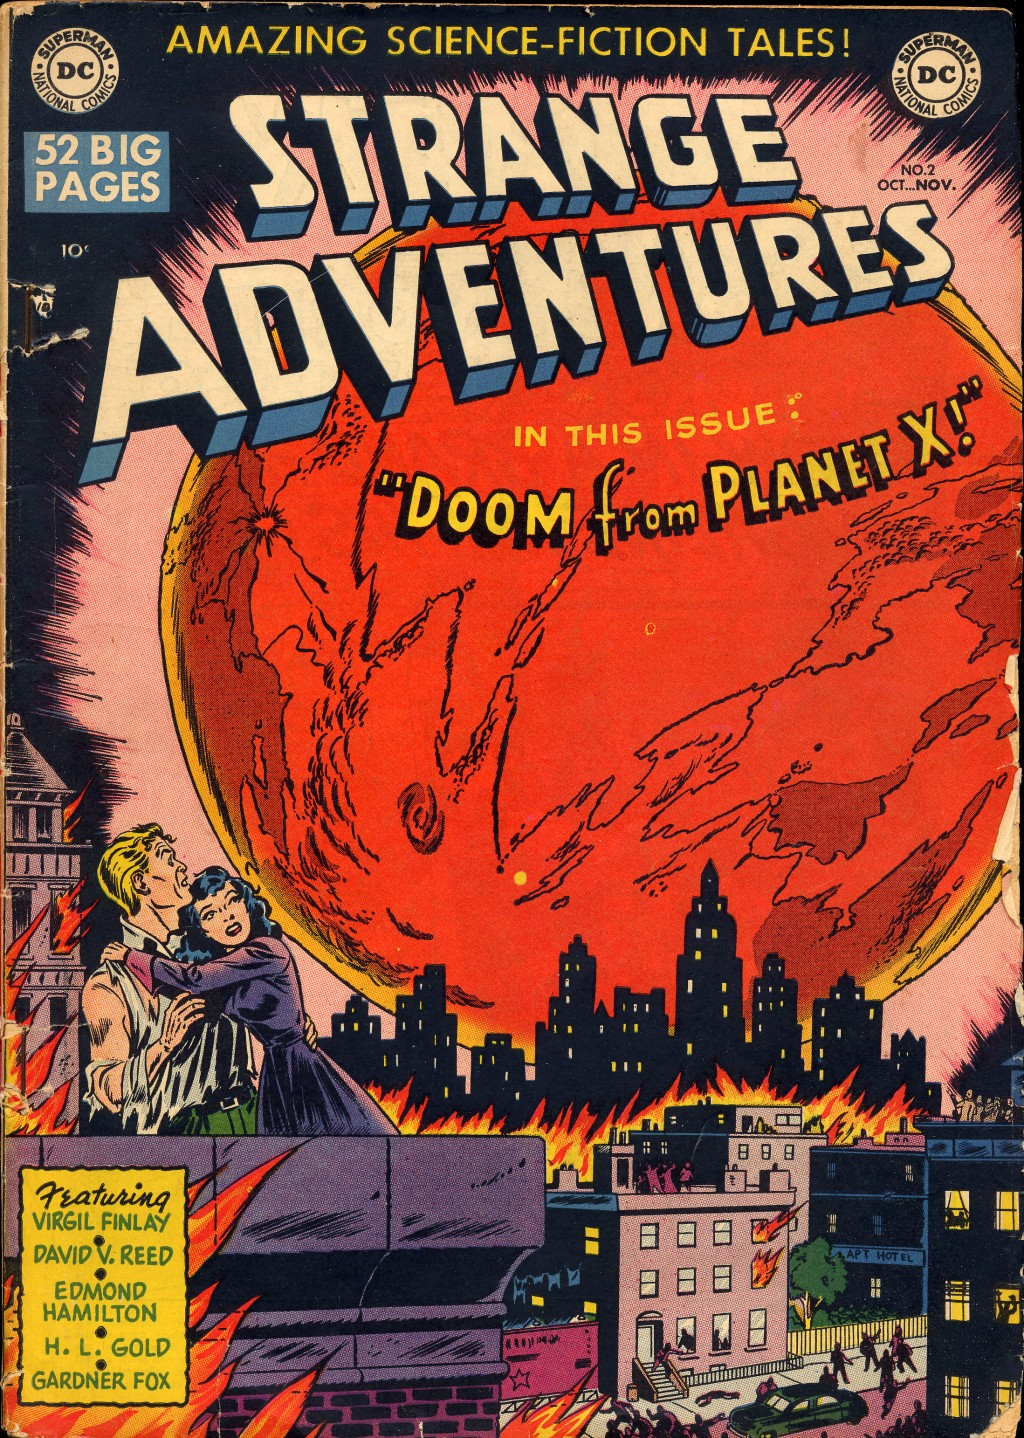 Strange Adventures (1950) #2, cover penciled by Jim Mooney & inked by Sy Barry.